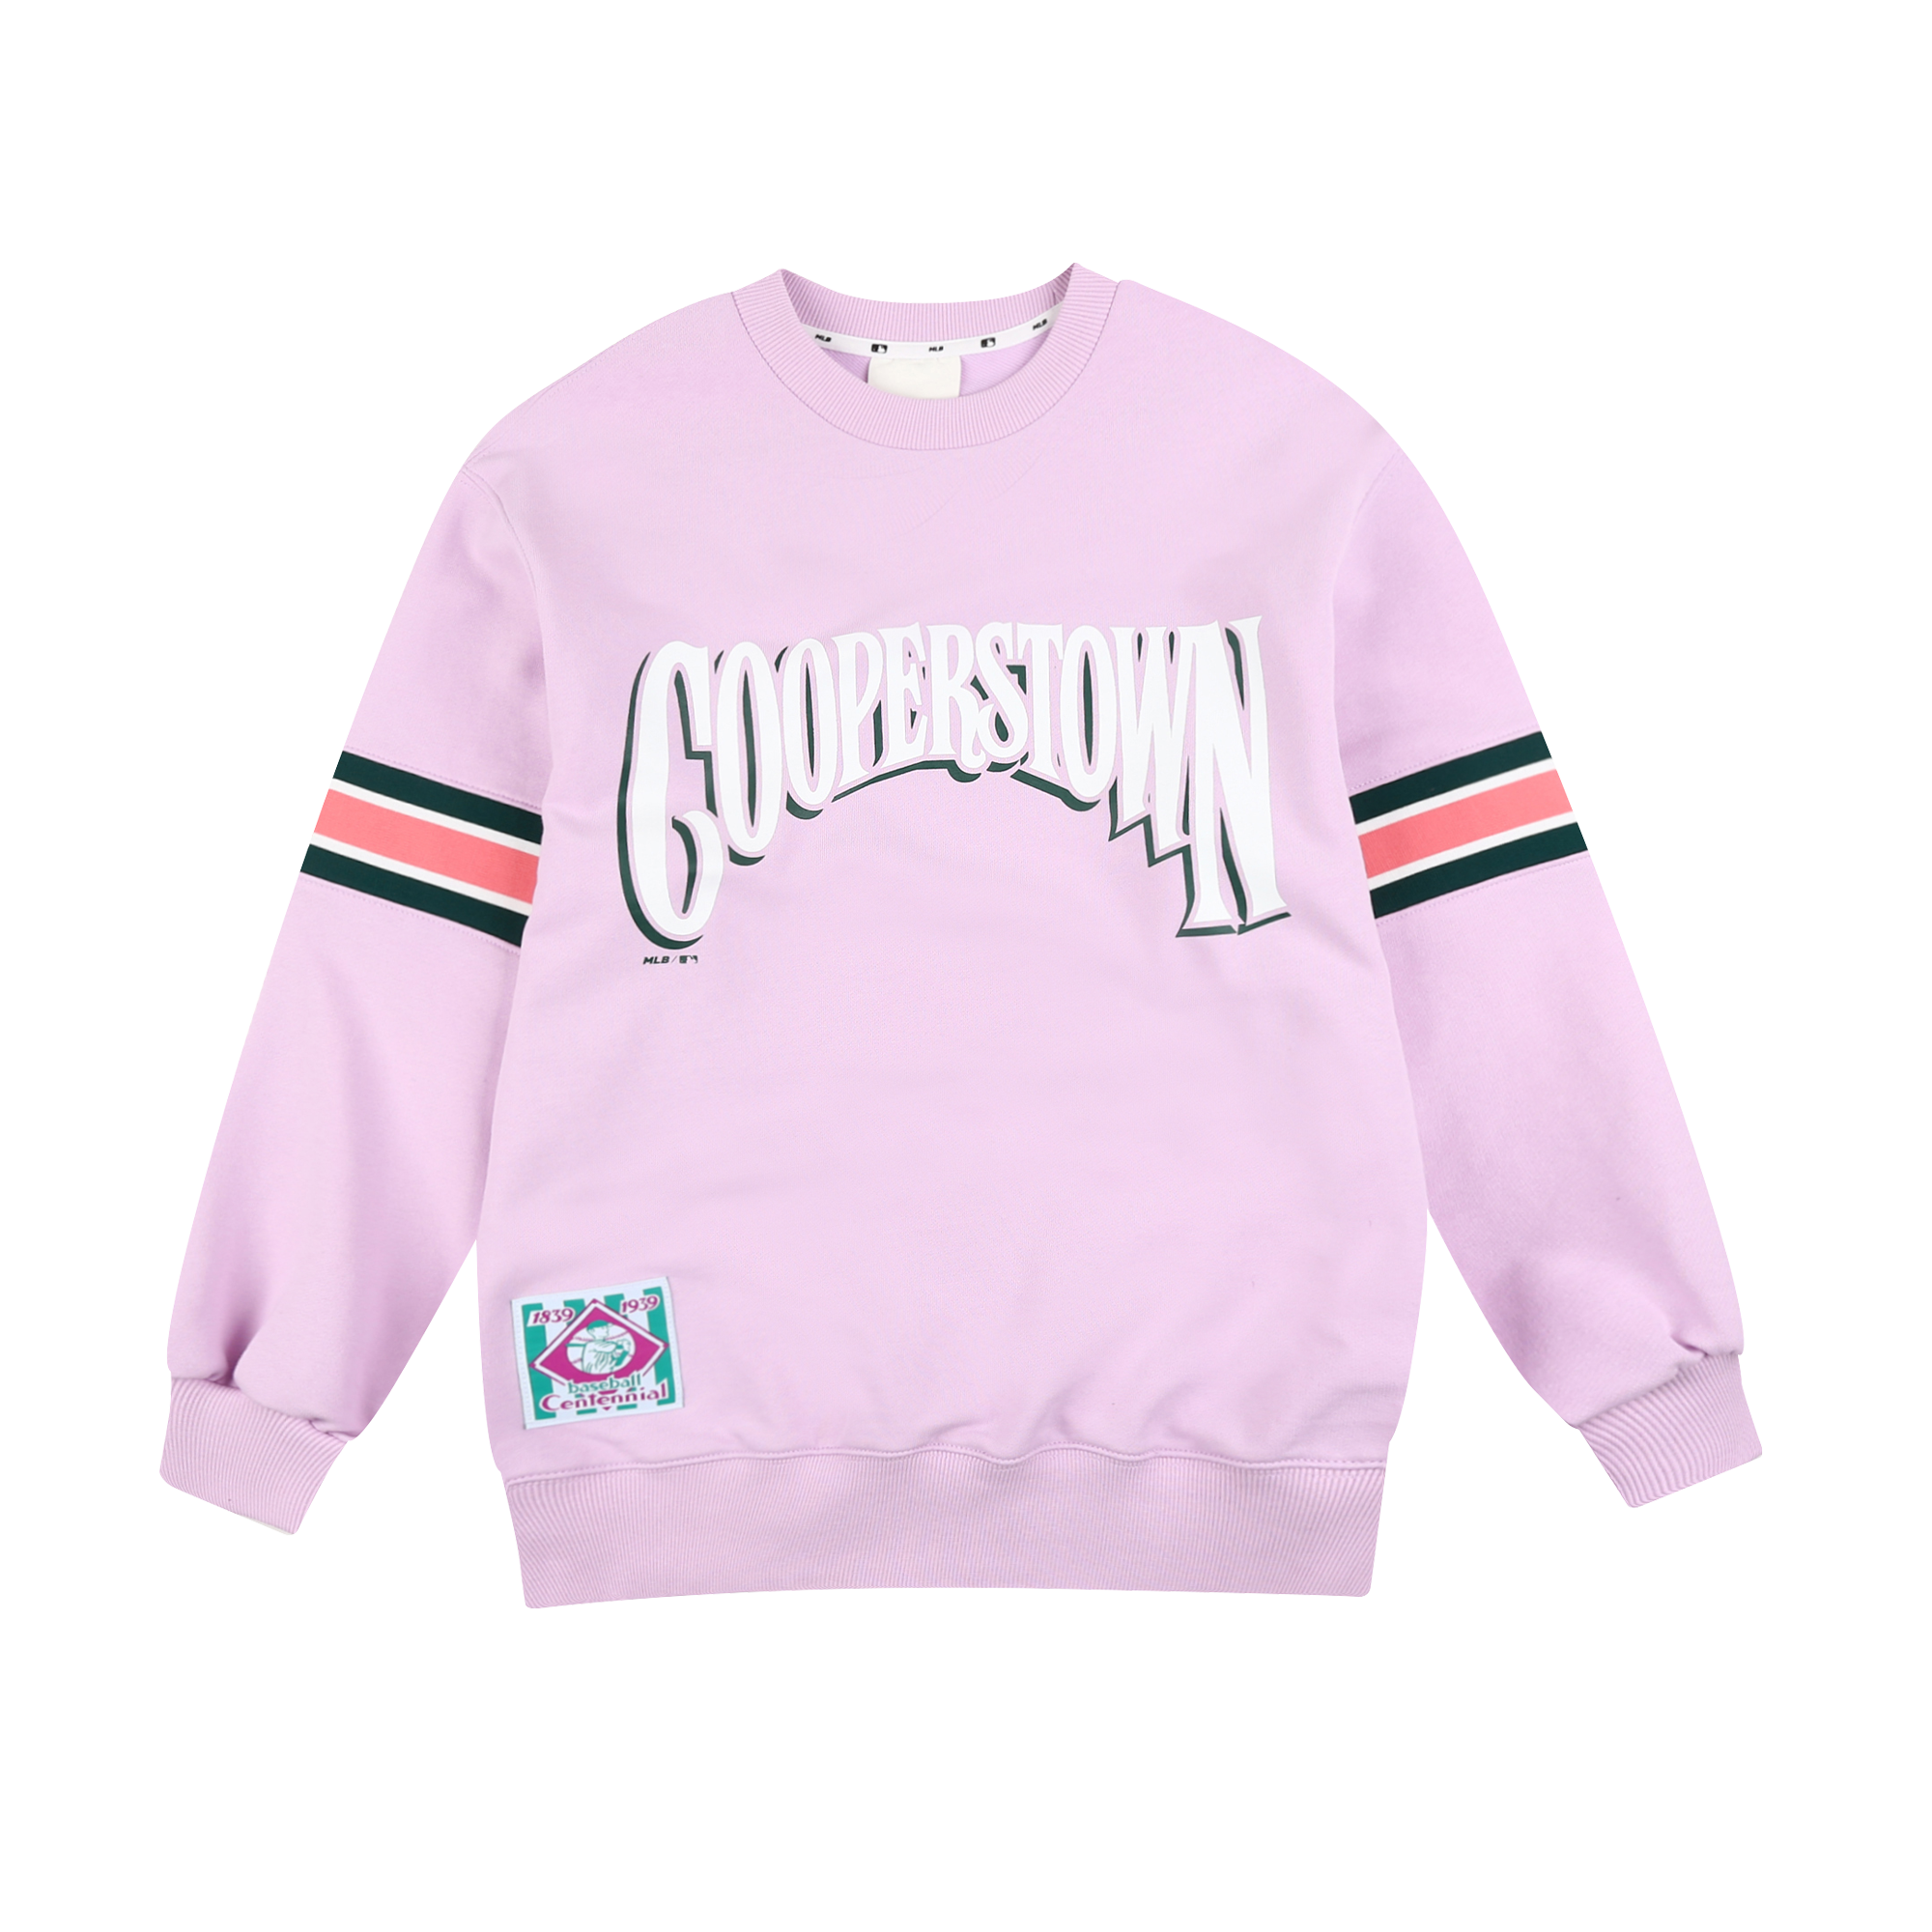 WOMEN'S MLB COOPERS TOWN ICE CREAM SWEATSHIRT